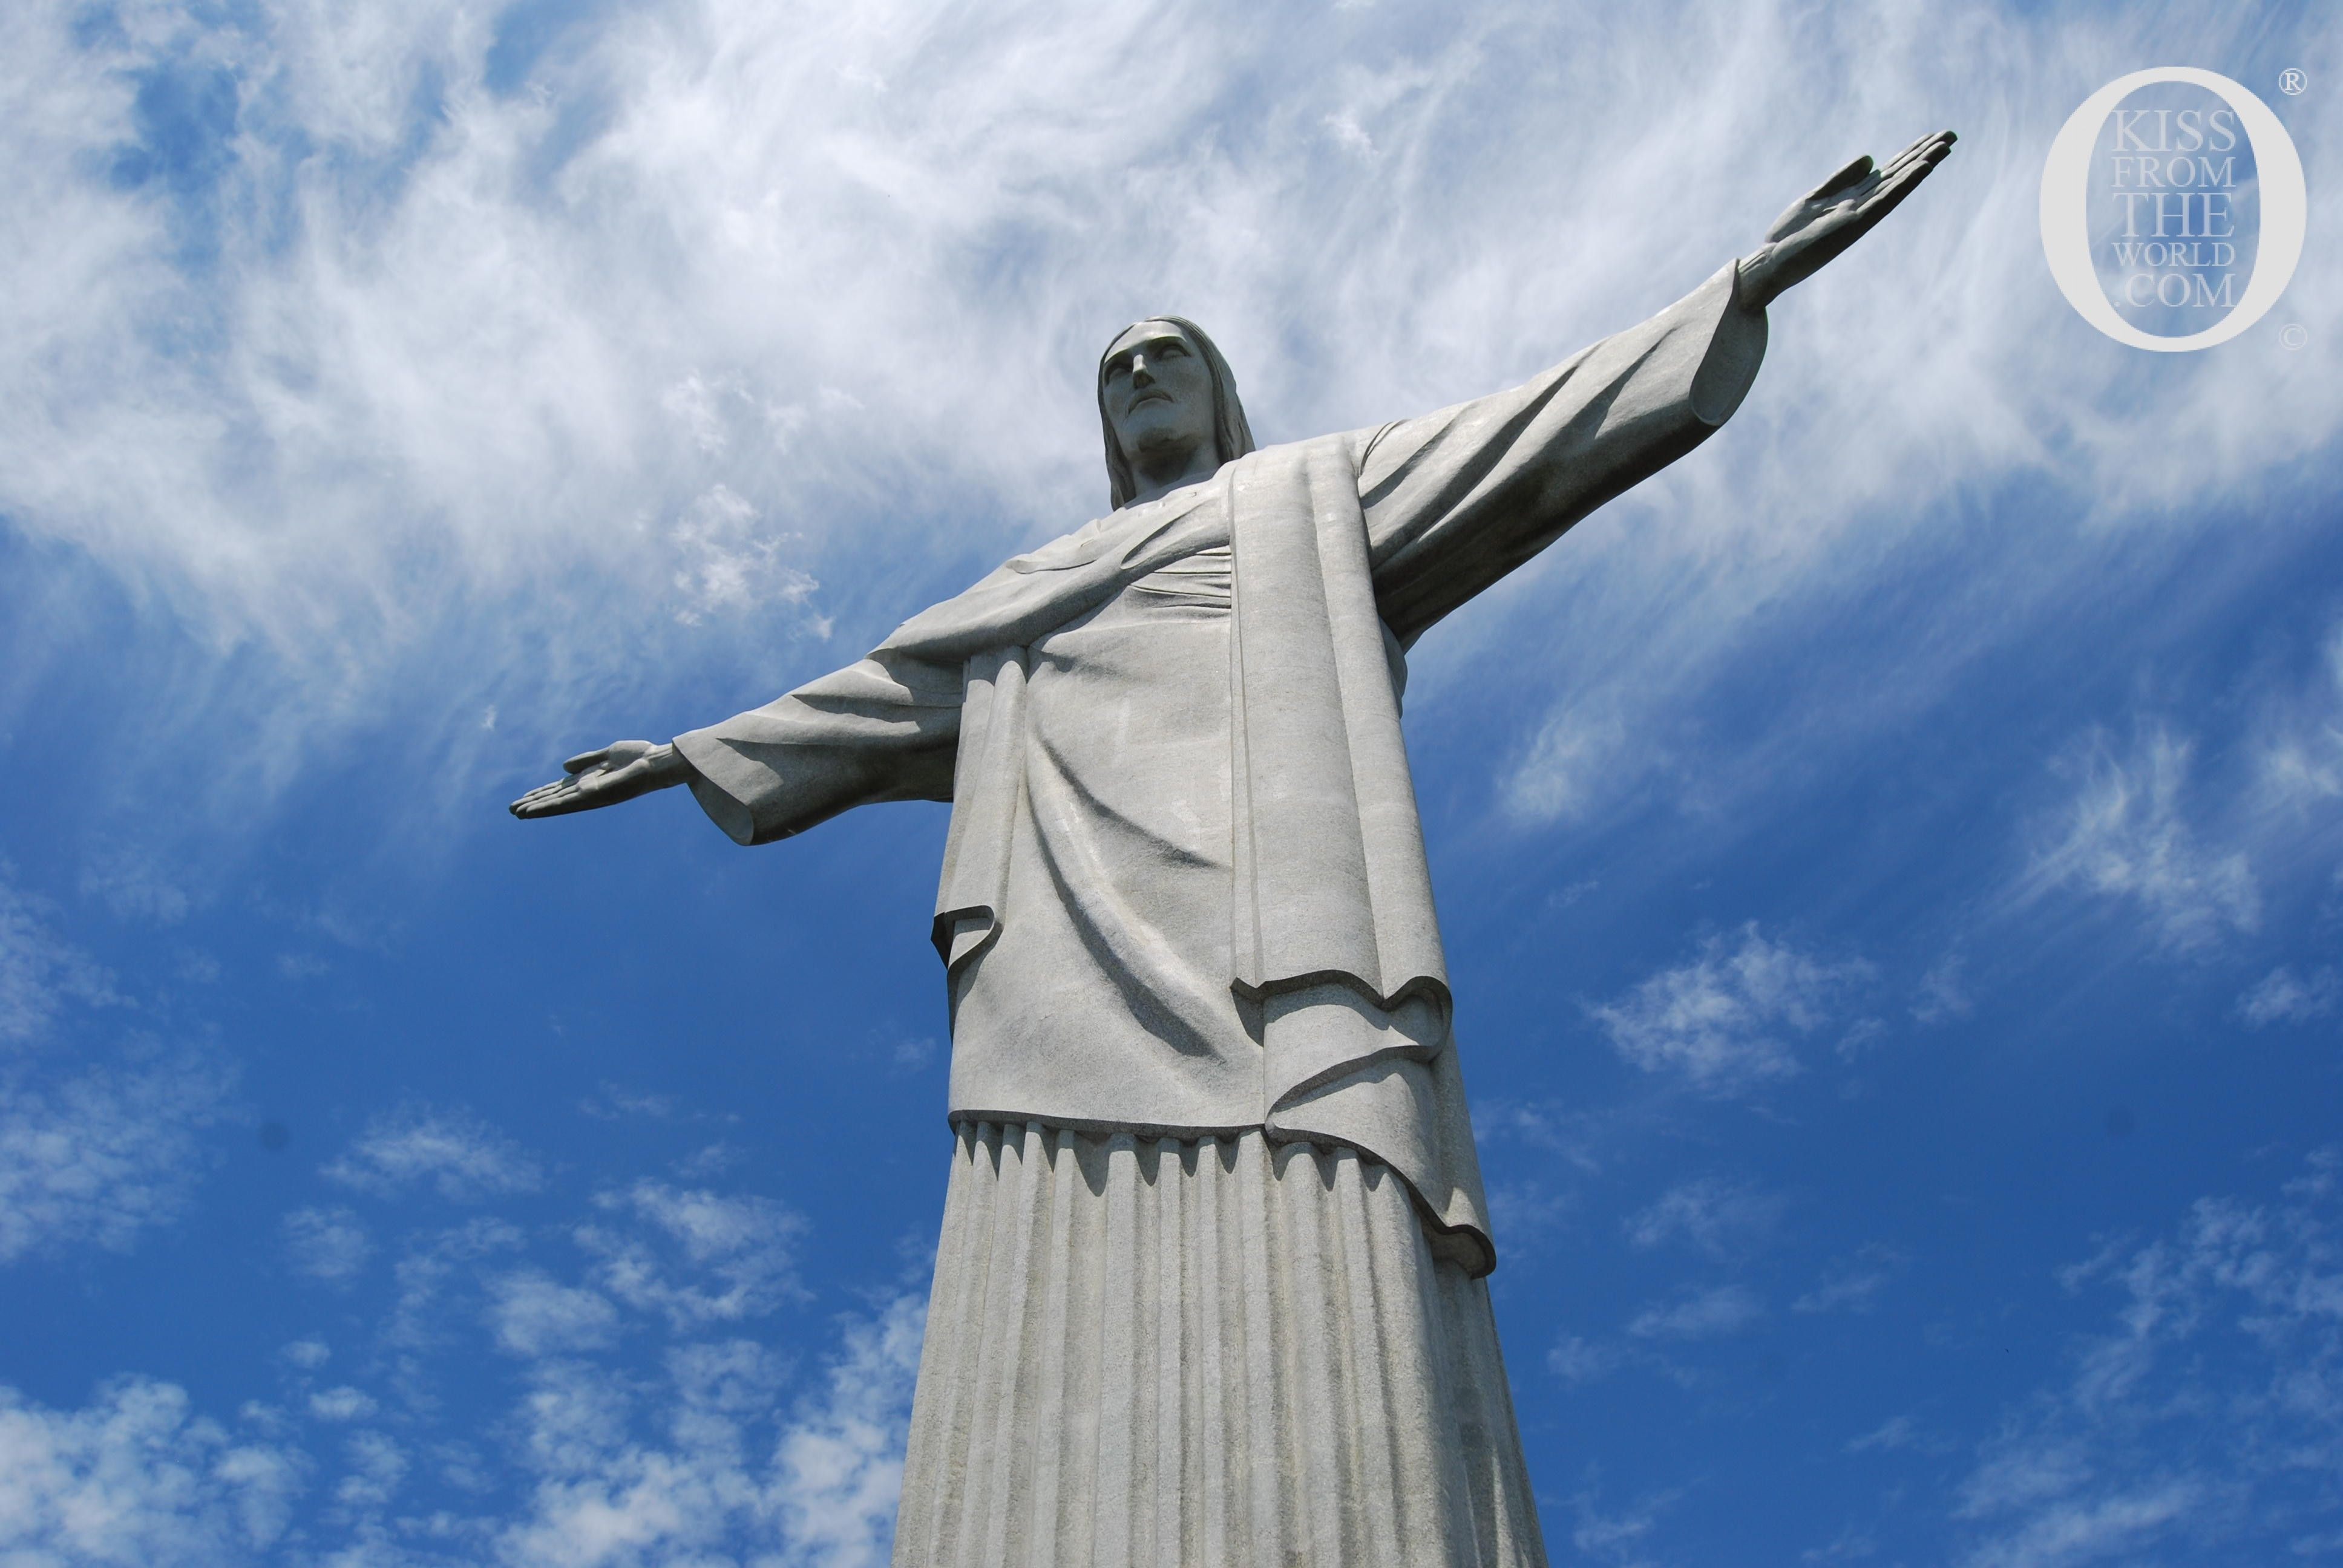 Christ the Redeemer: Standing on top of Corcovado Hill, the statue can be seen from almost everywhere in the city. Brazil, Rio De Janeiro photo shot.